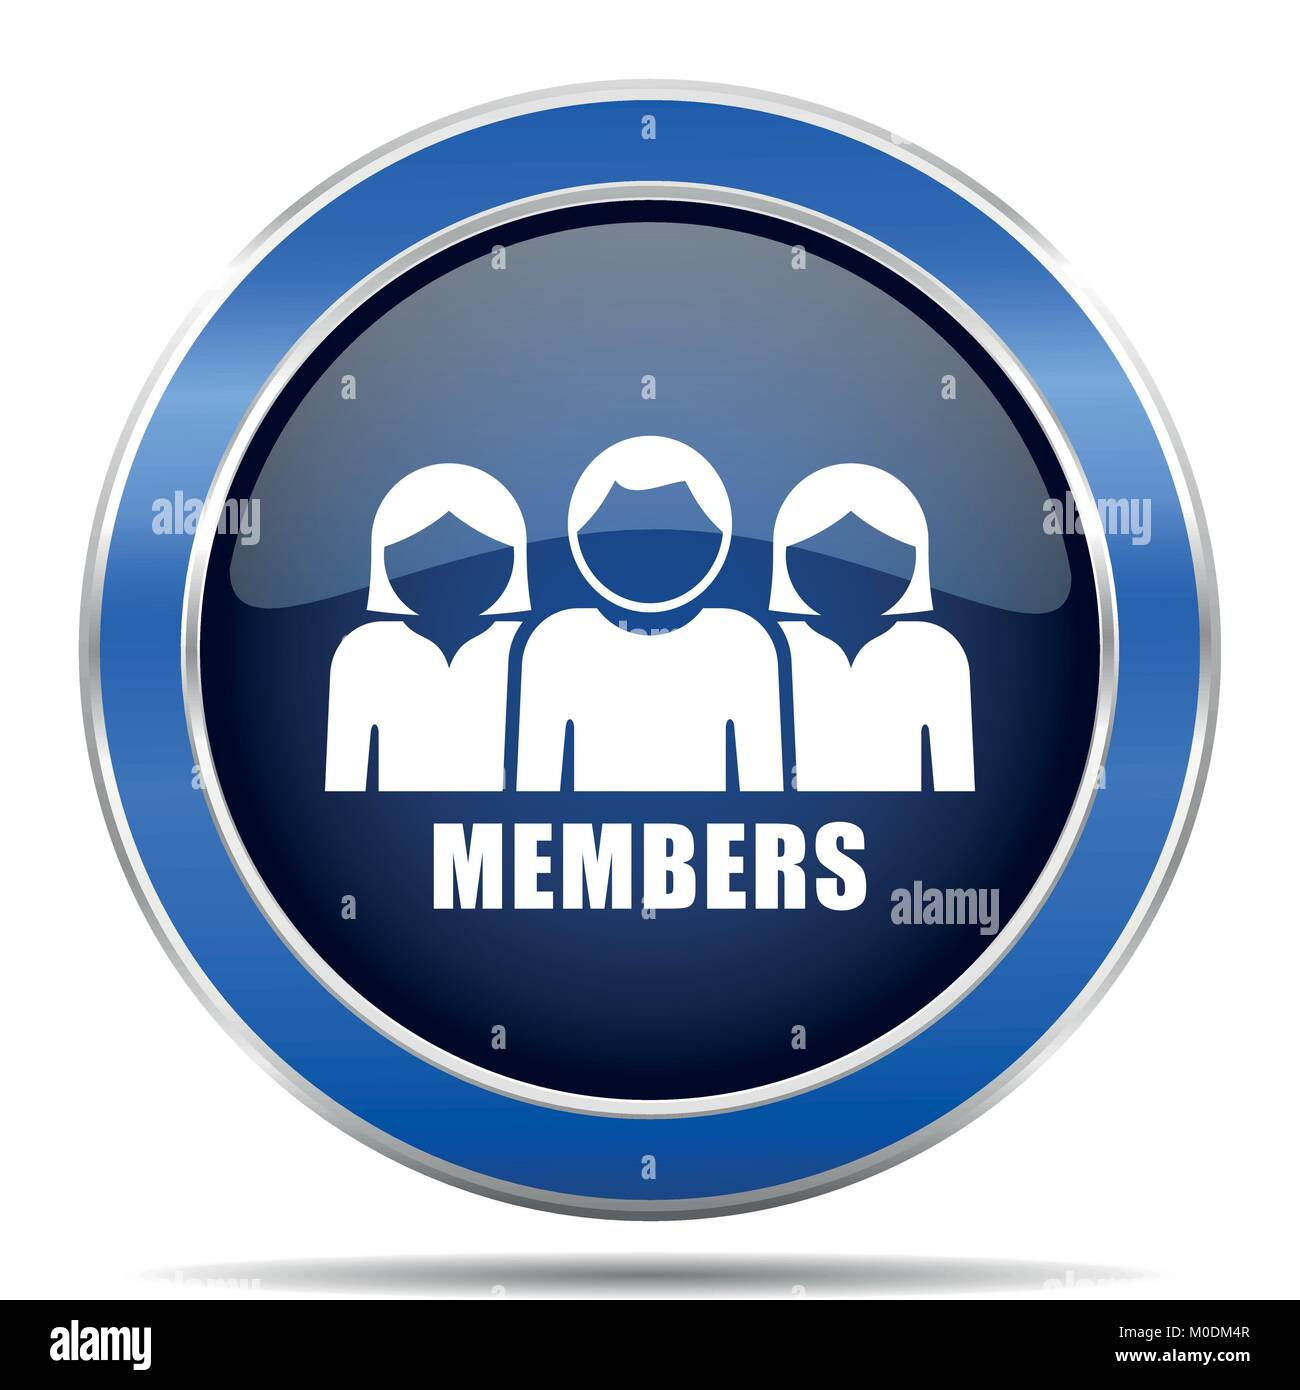 Members vector icon. Modern design blue silver metallic glossy web and mobile applications button in eps 10 - Stock Vector